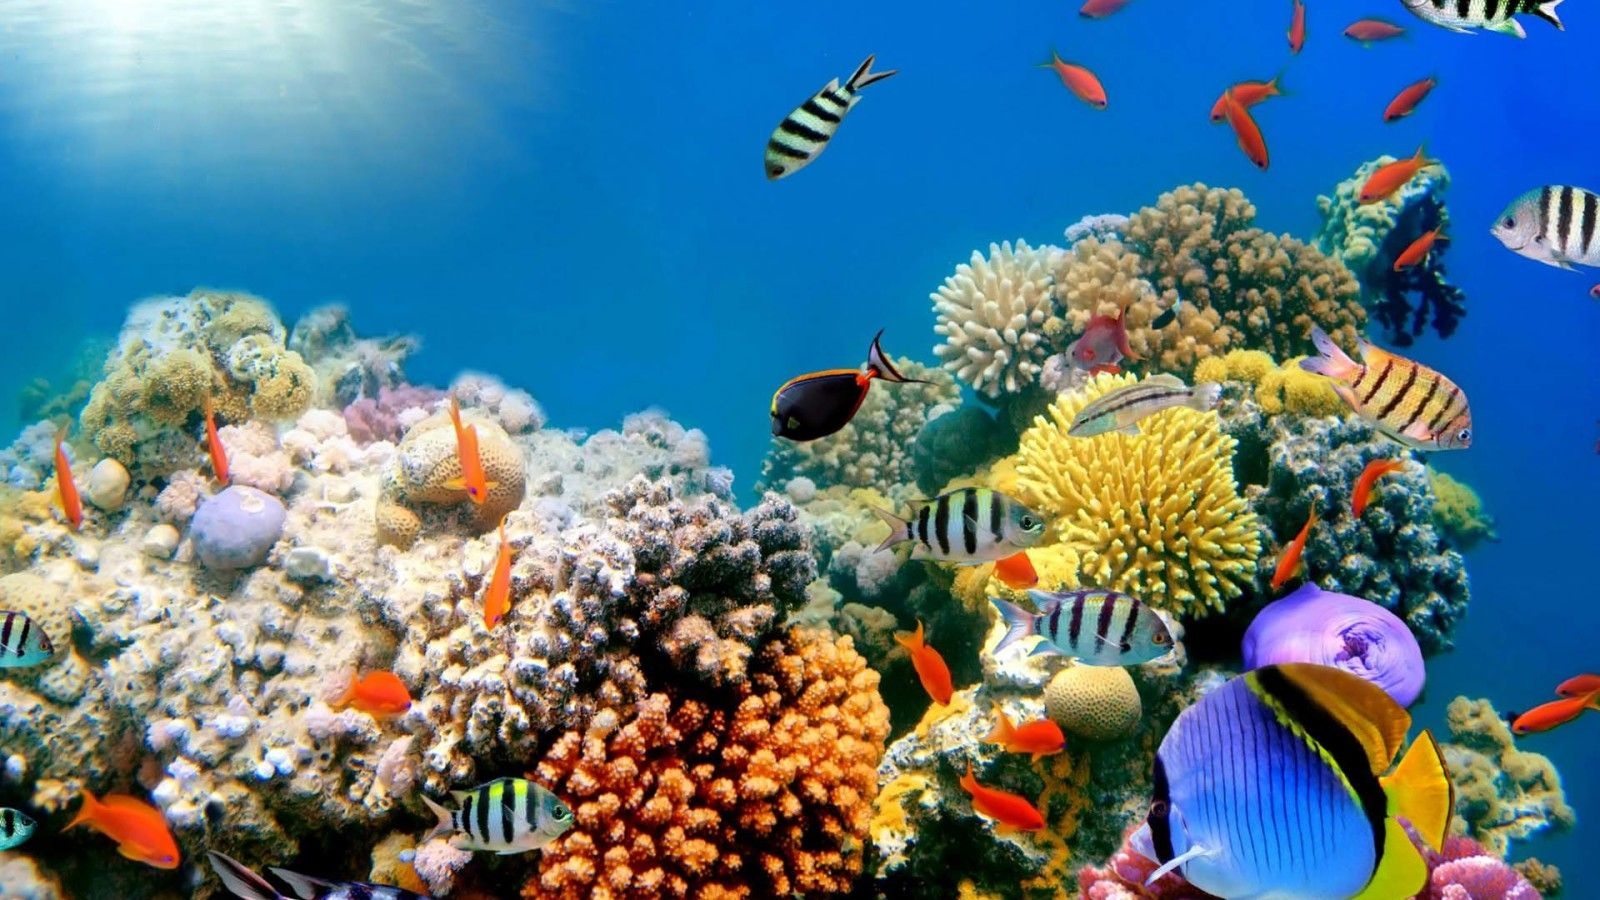 Coral Reef And Tropical Fish HD Desktop Wallpaper for K Ultra